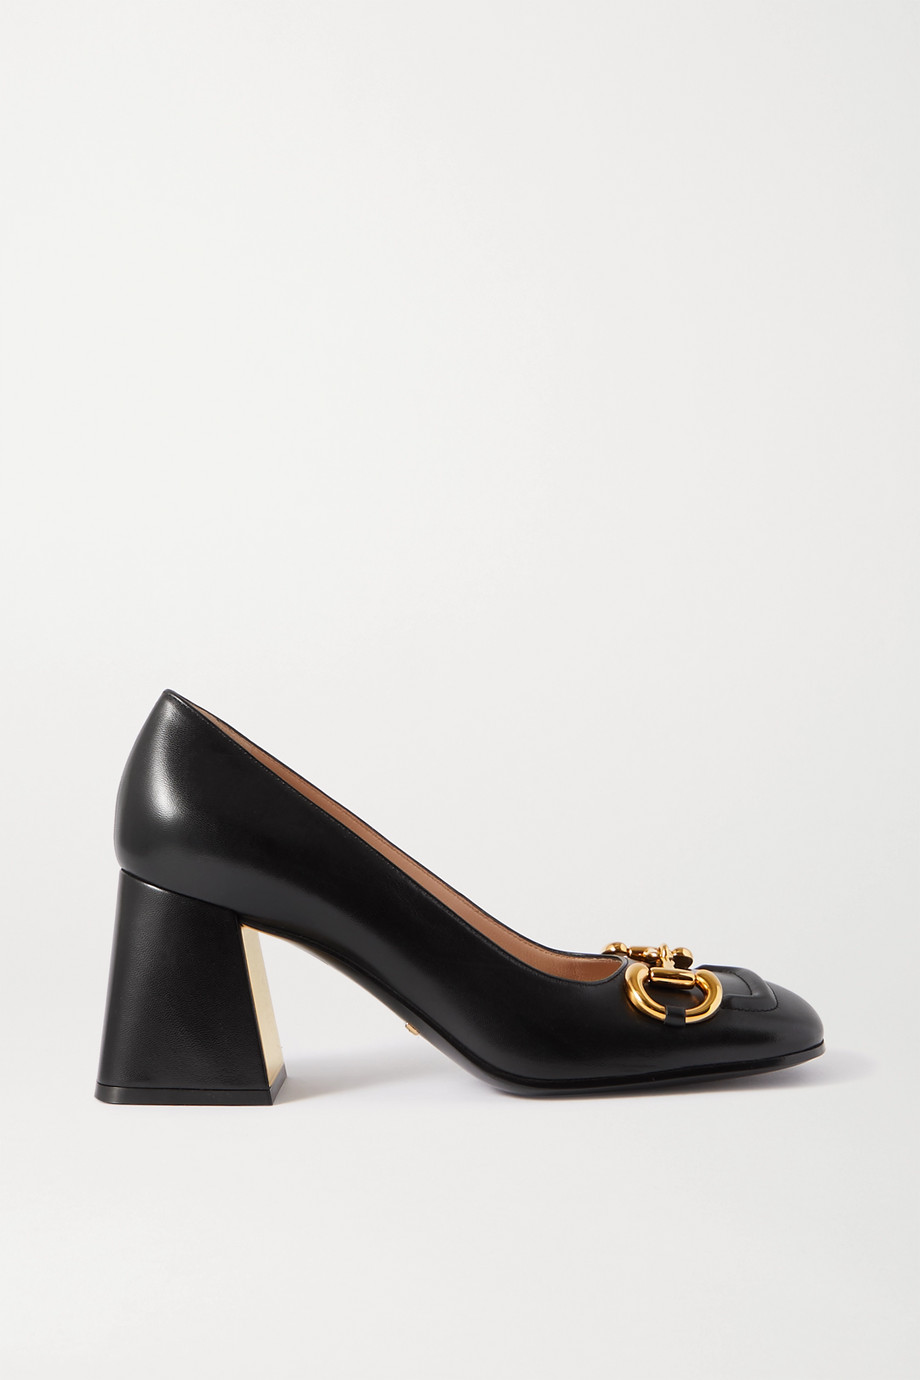 Gucci Horsebit-detailed leather pumps